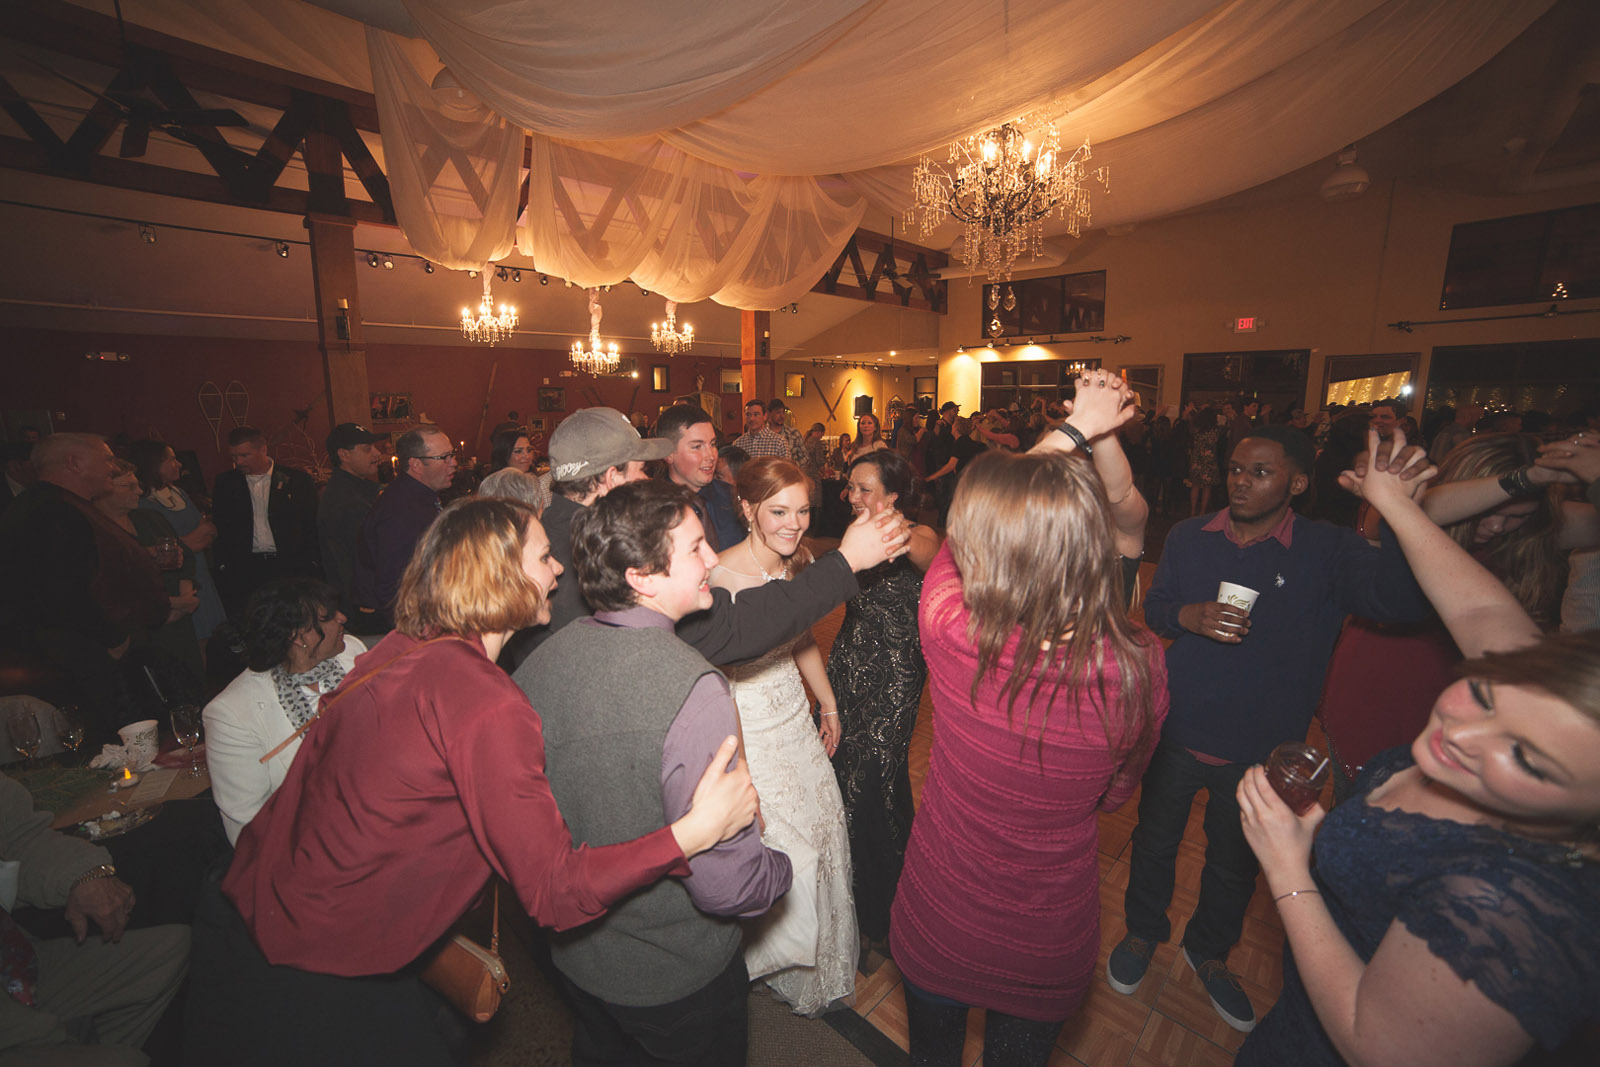 214-wedding-reception-pictures-with-dancing-and-having-fun-with-friends-in-colorado-photographer